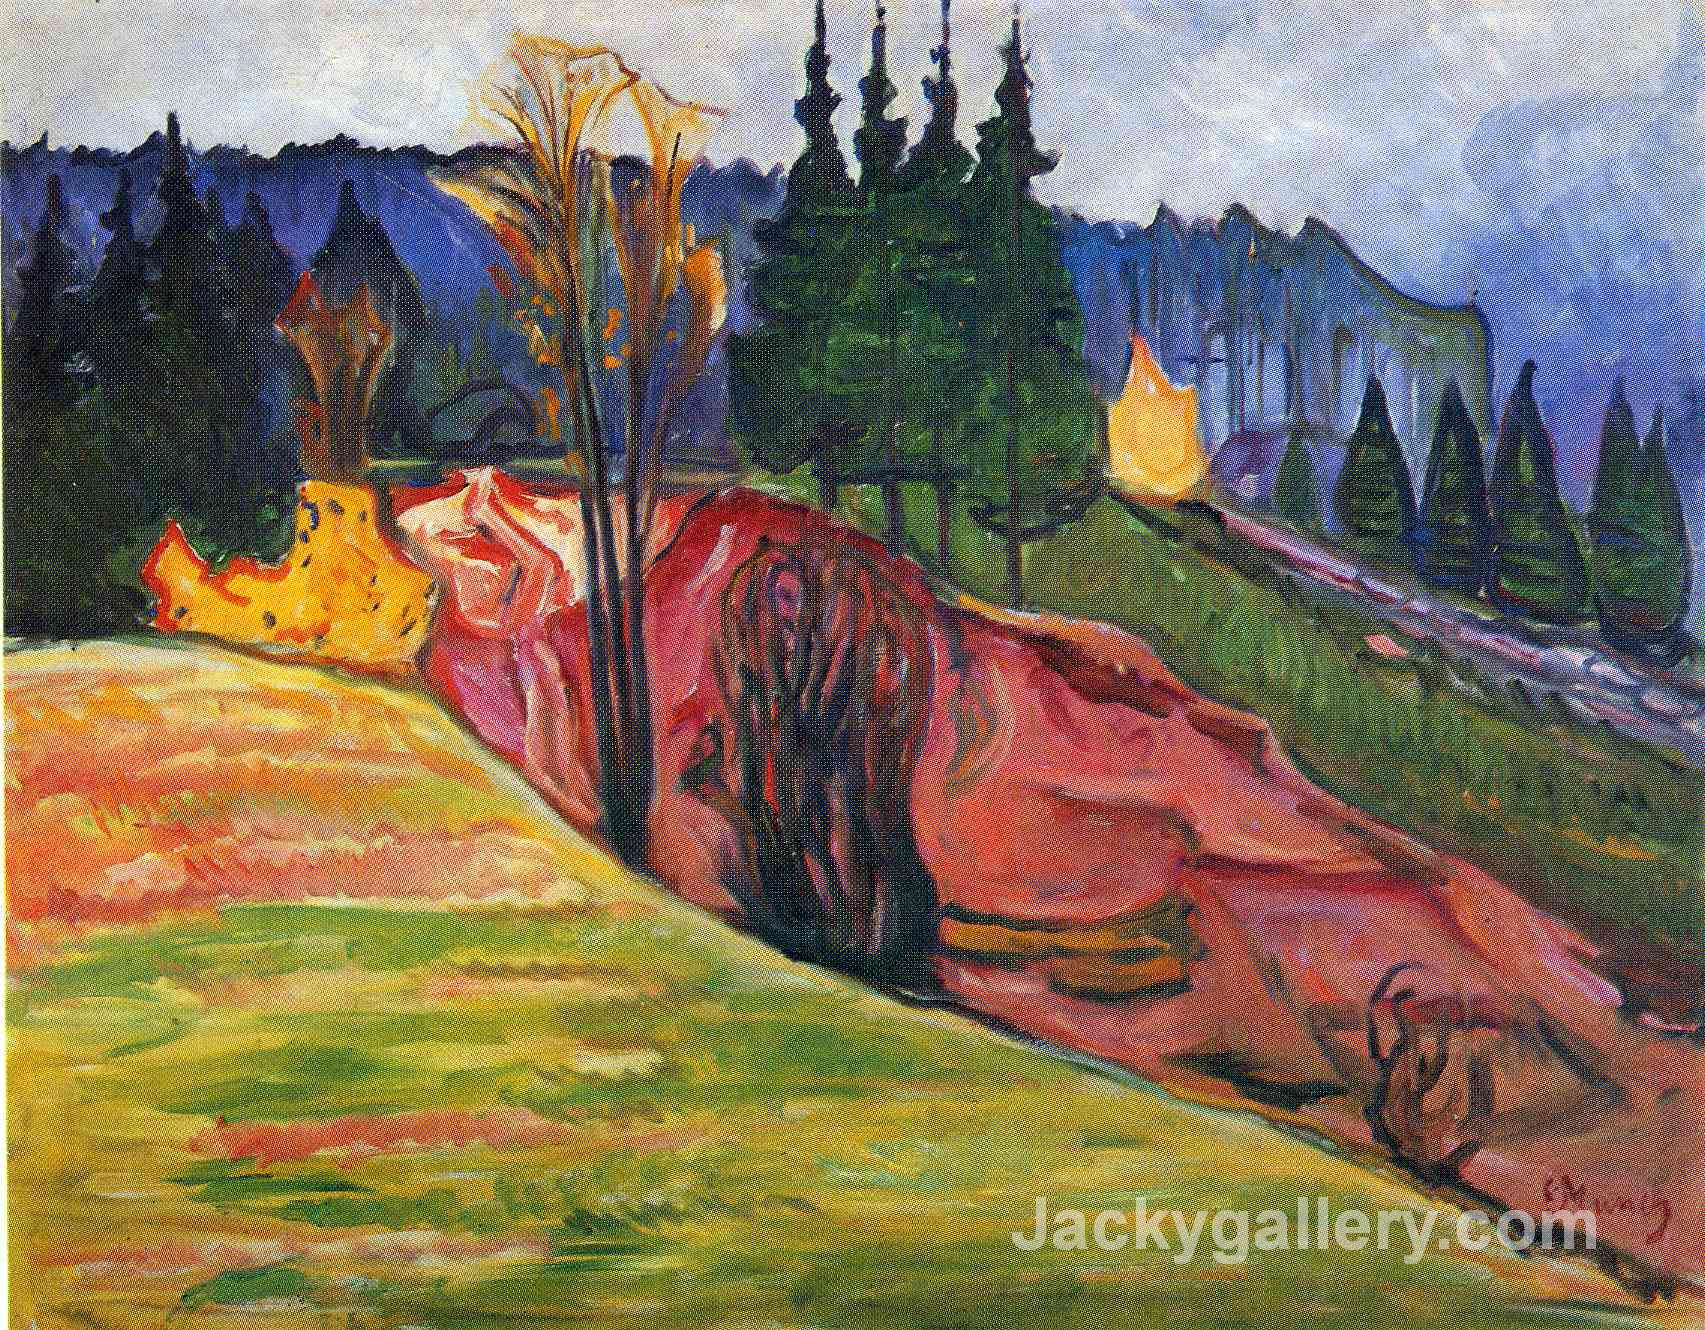 From Thuringewald by Edvard Munch paintings reproduction